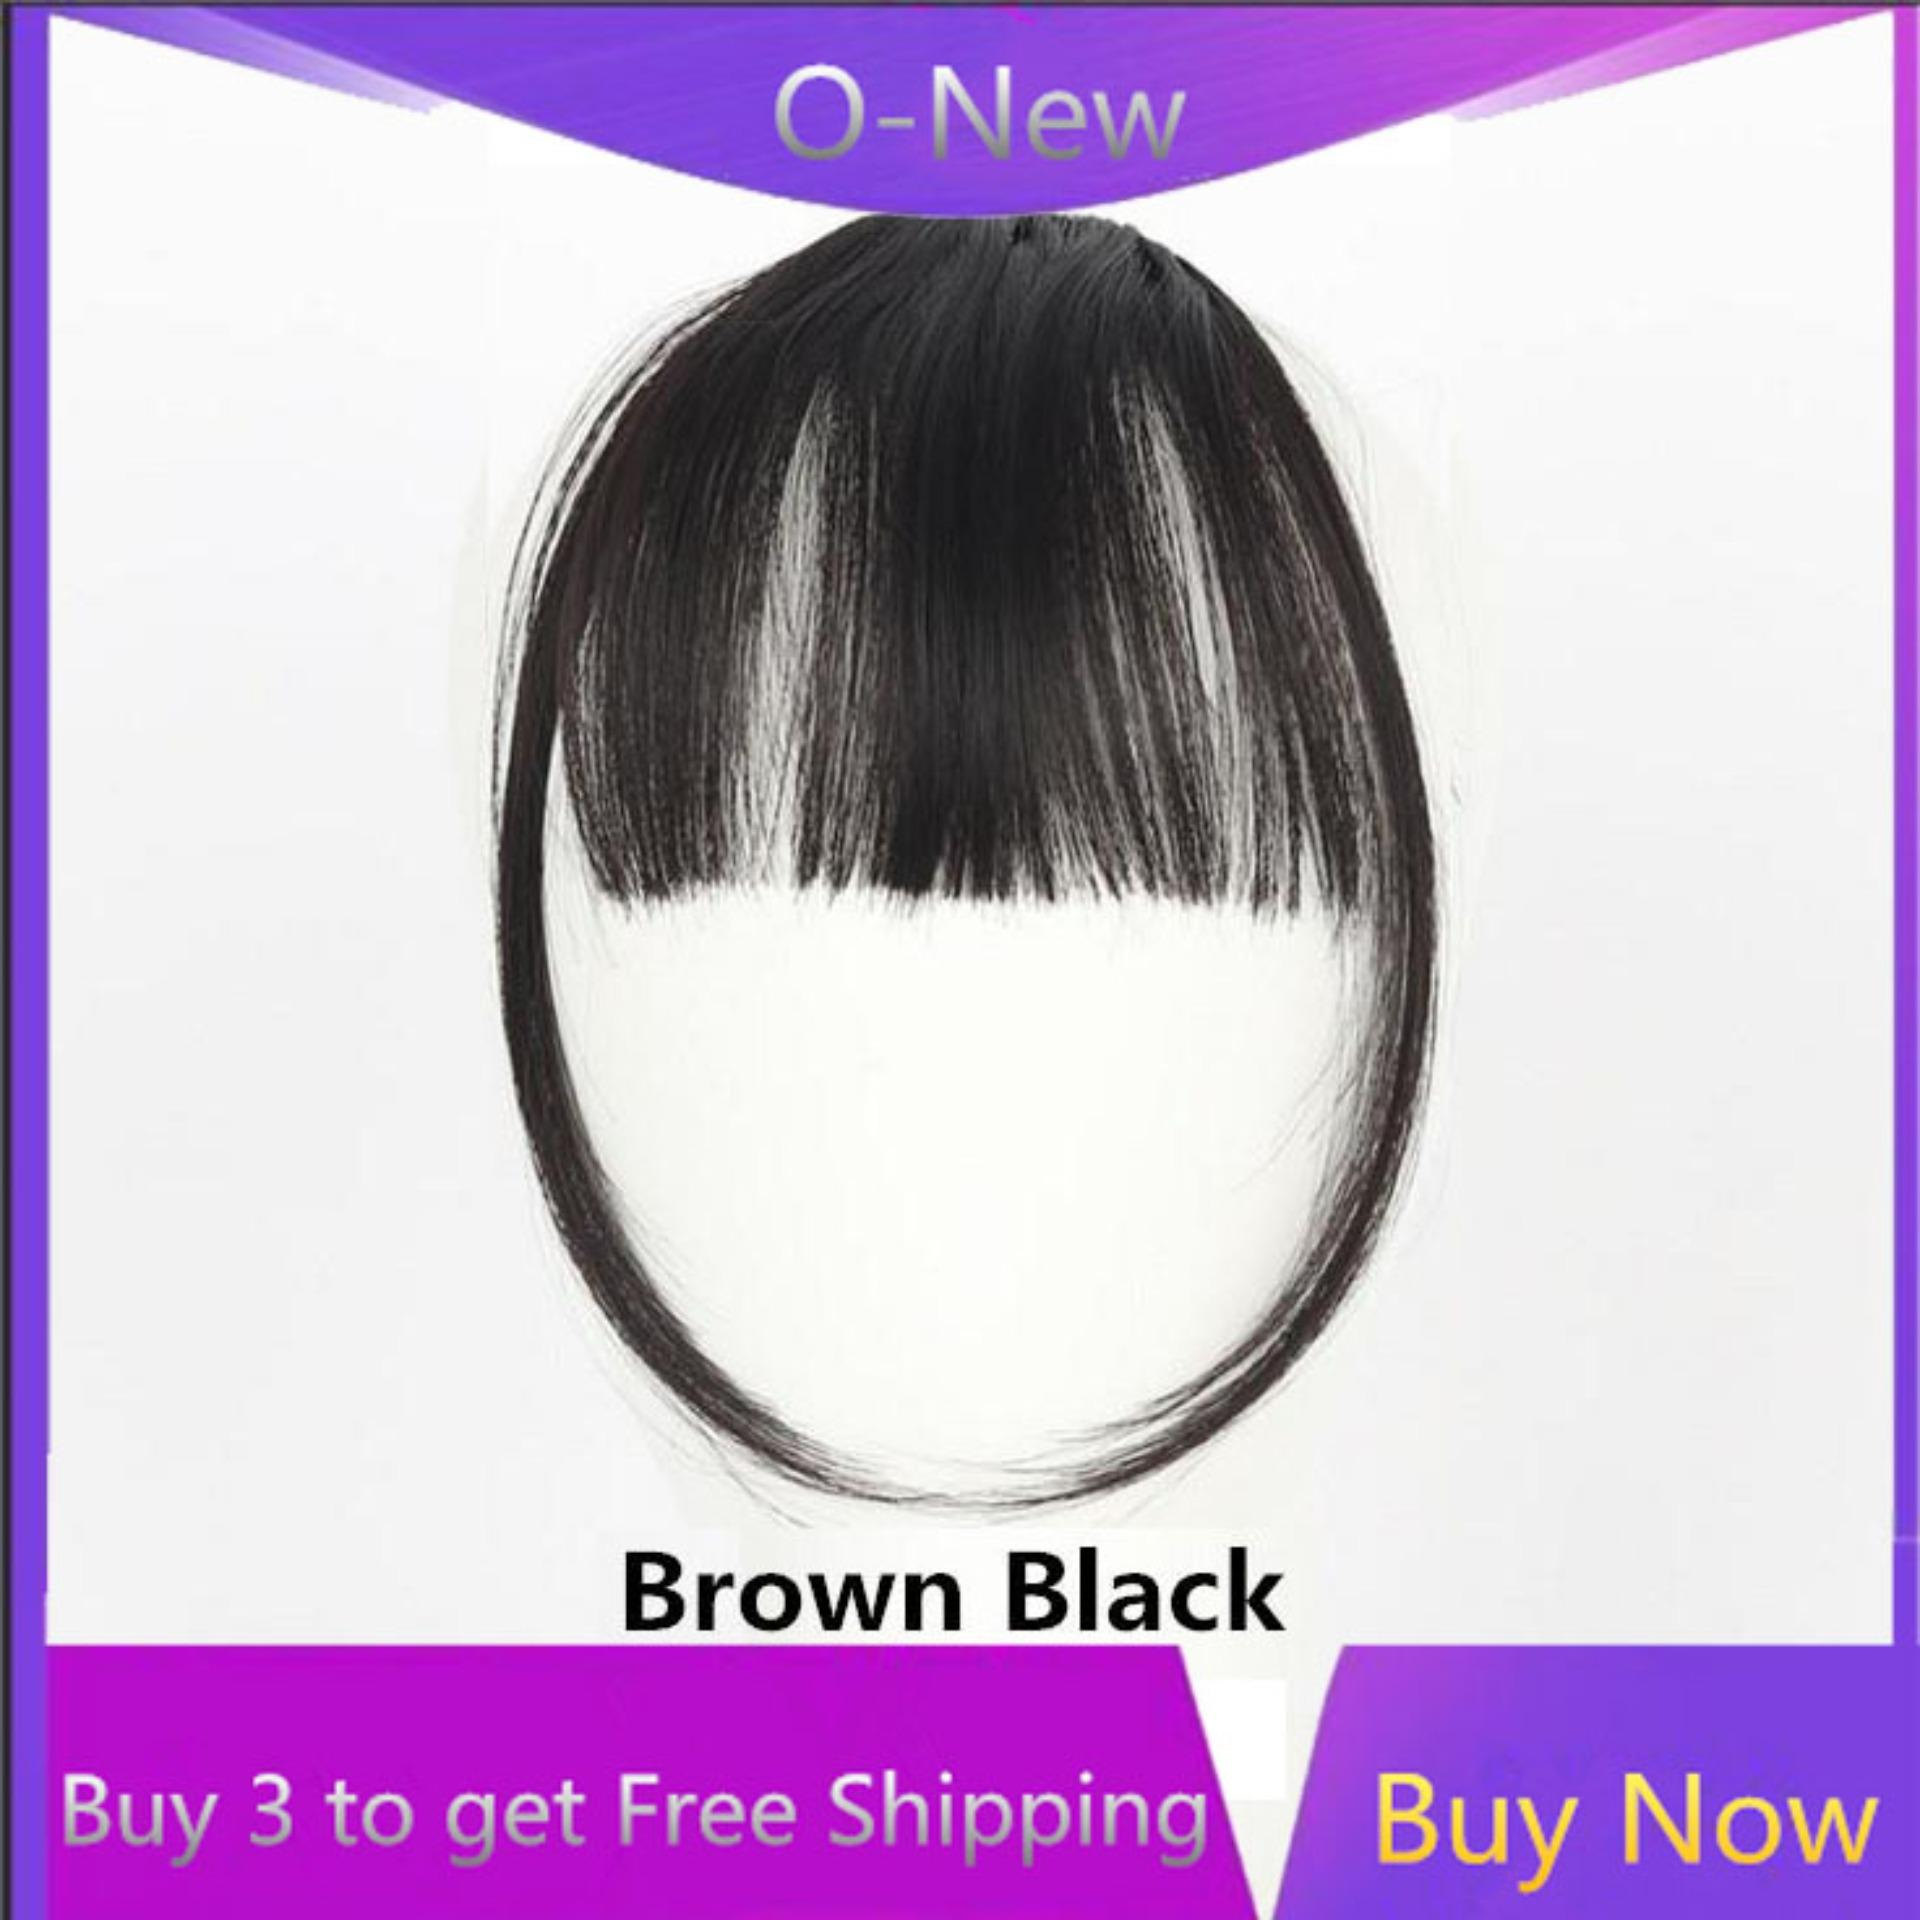 b2641f885f530 O-New Women Bangs Wig Hair Extension Fringe Hairpieces Hair Clips Front  Neat Bang